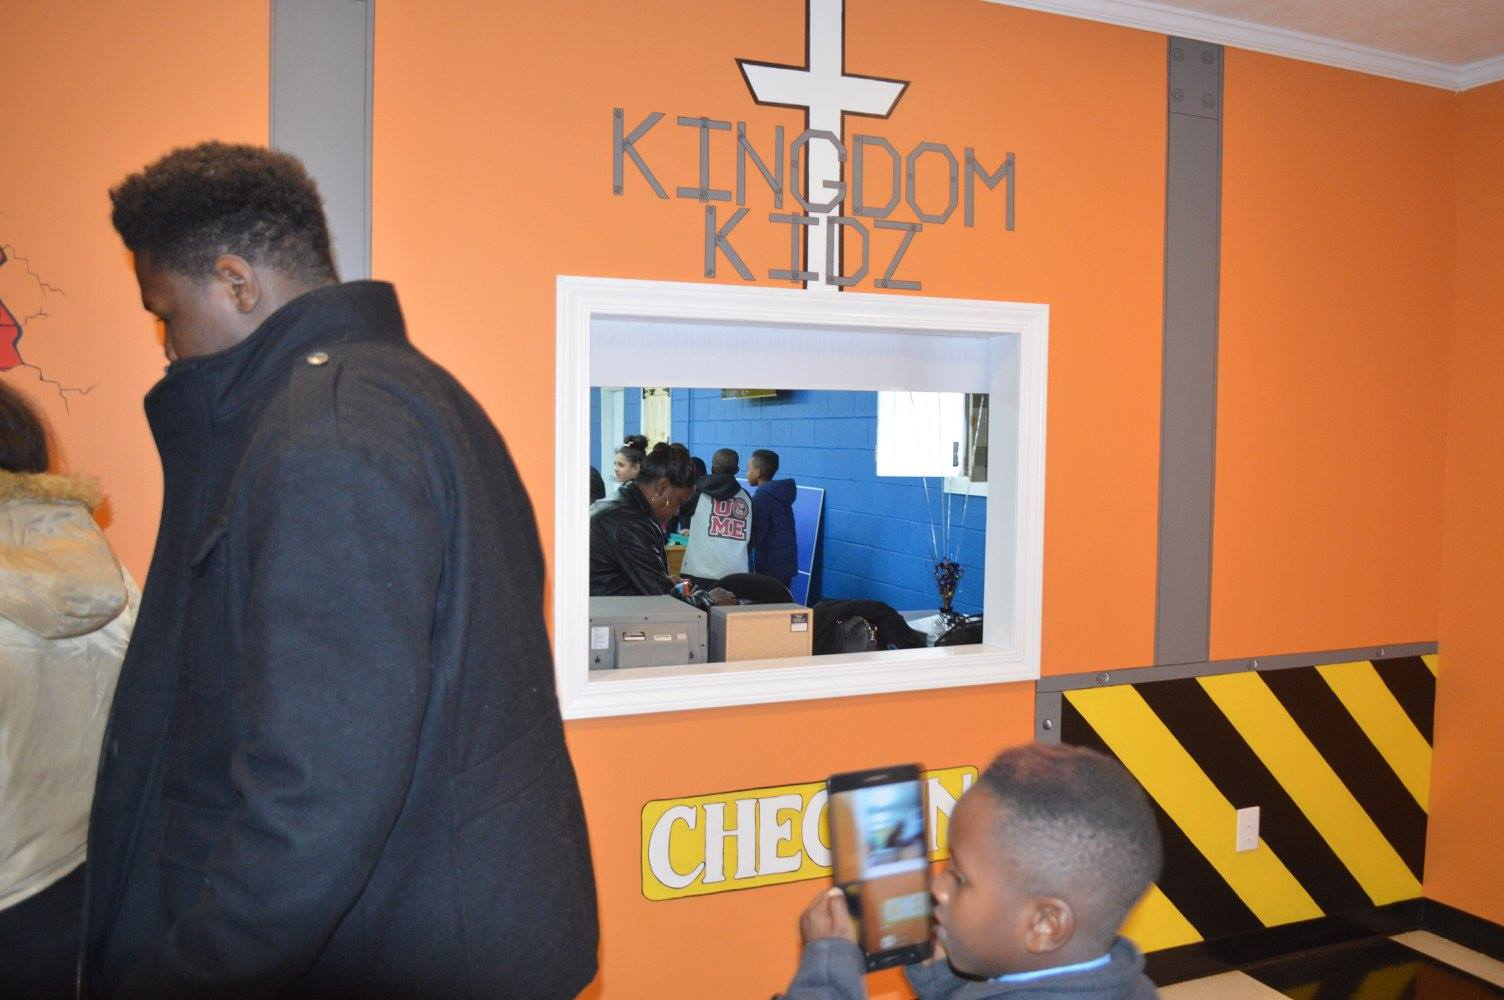 KINGDOM KIDS CENTER RIBBON-CUTTING